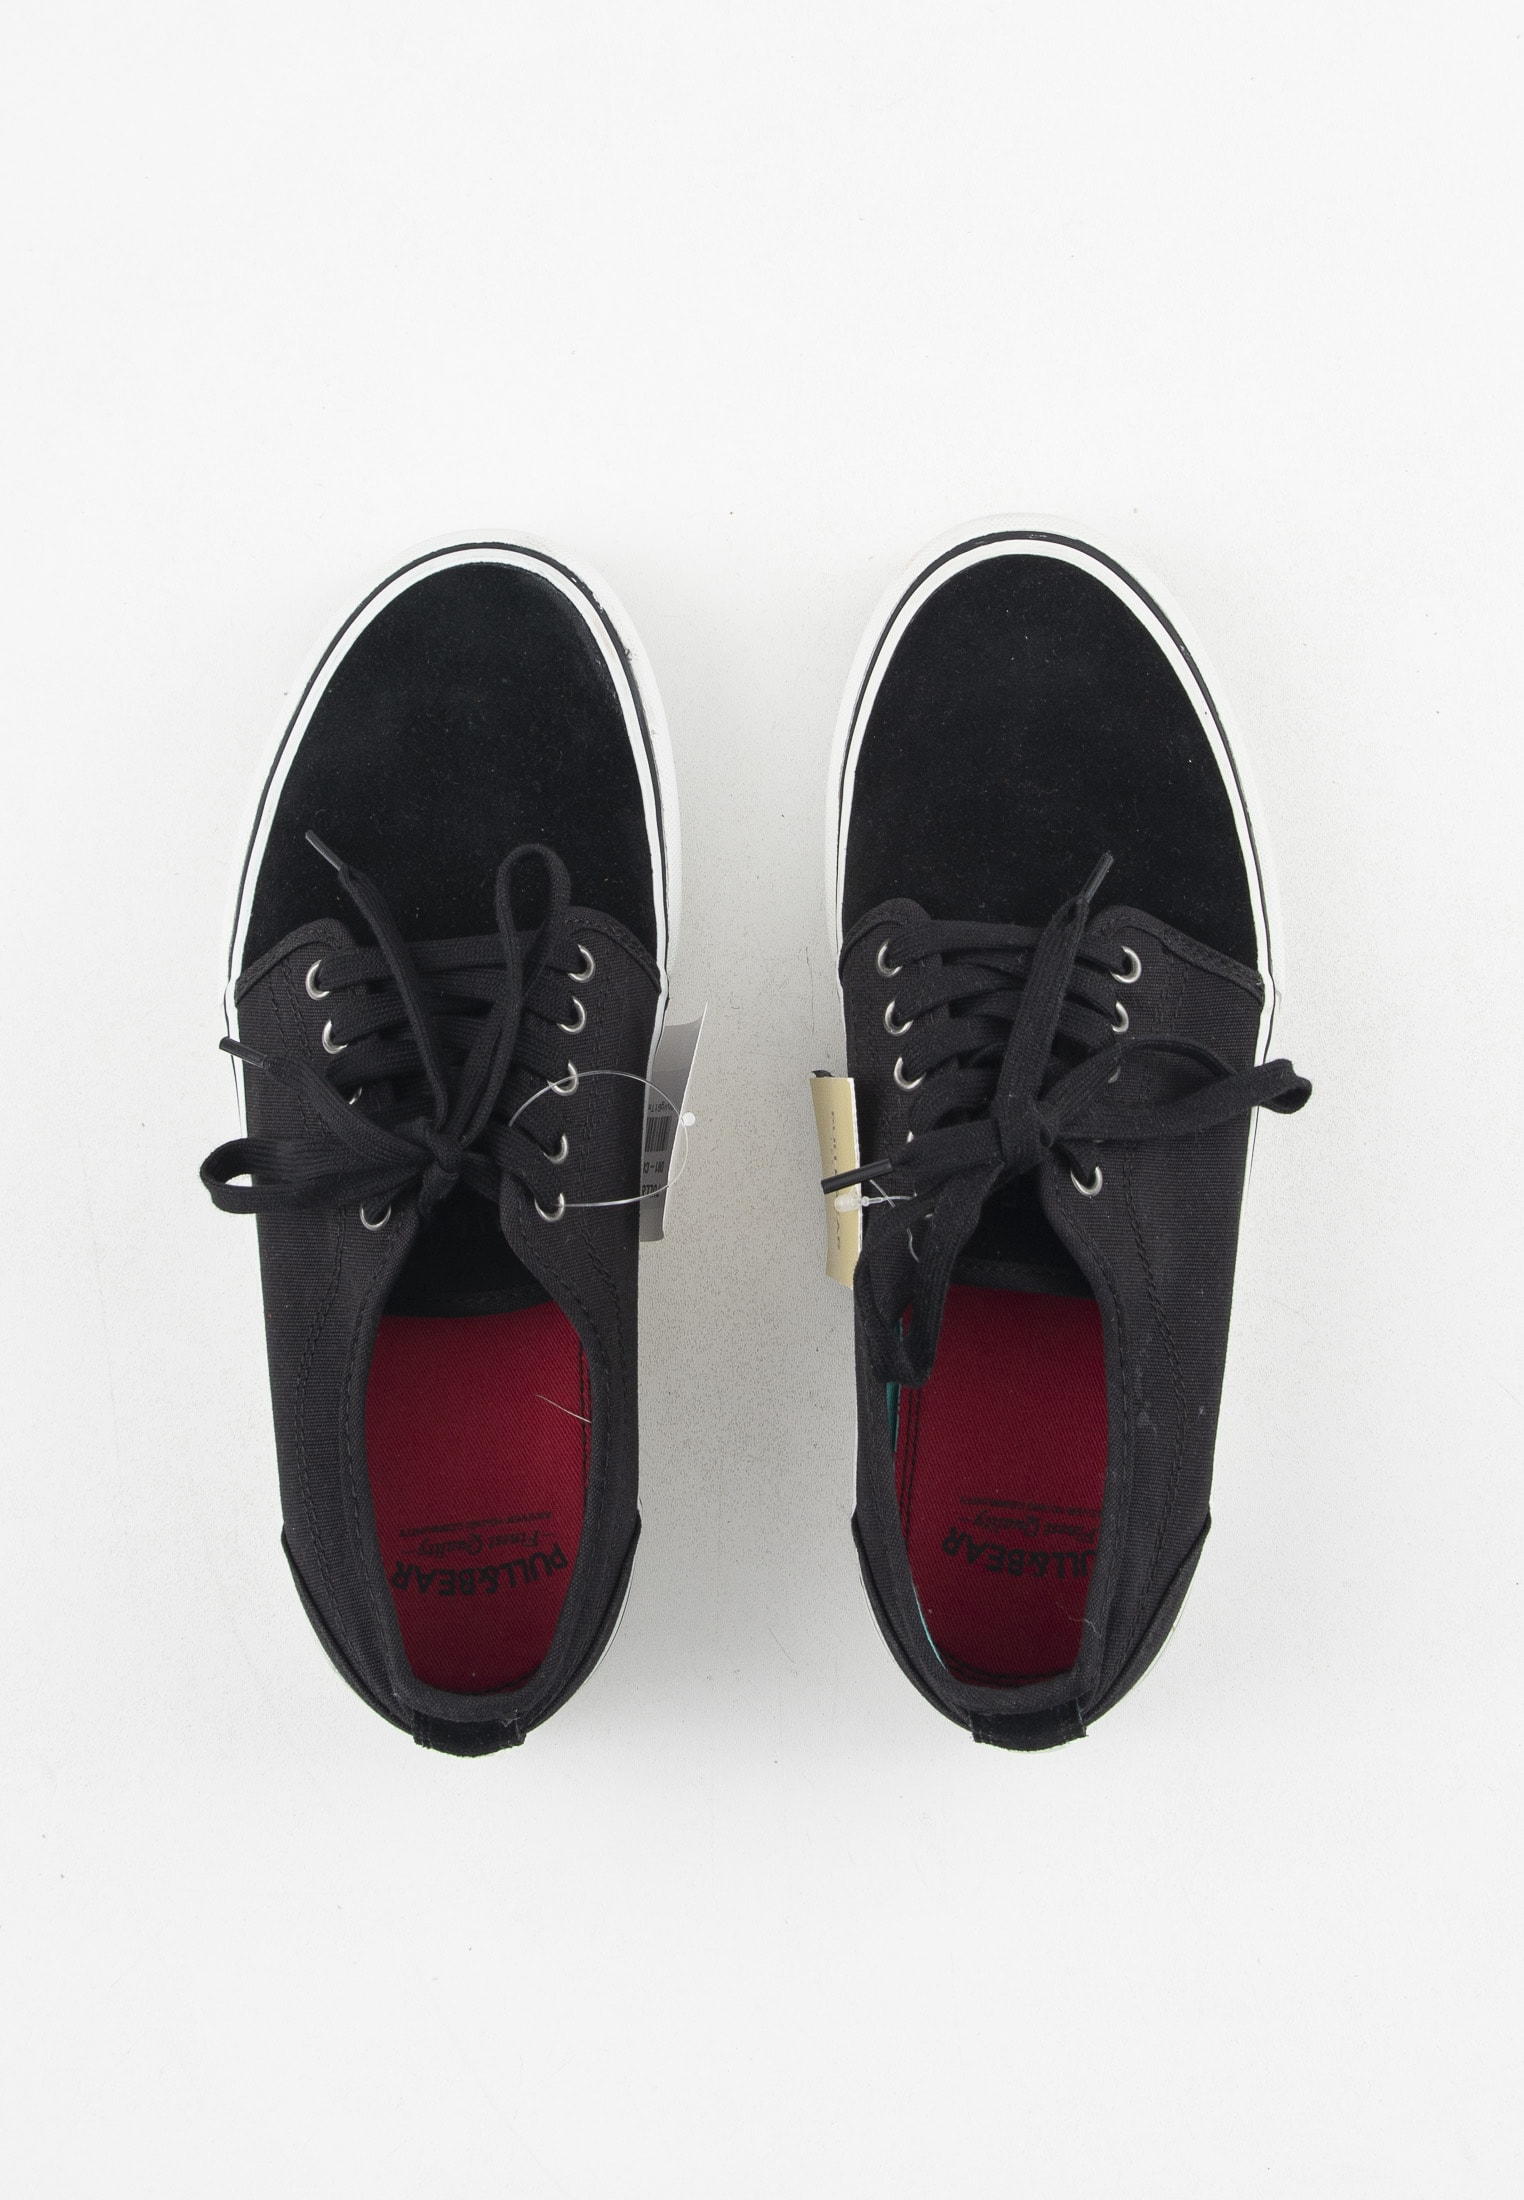 PULL&BEAR sneakers, sort, 40